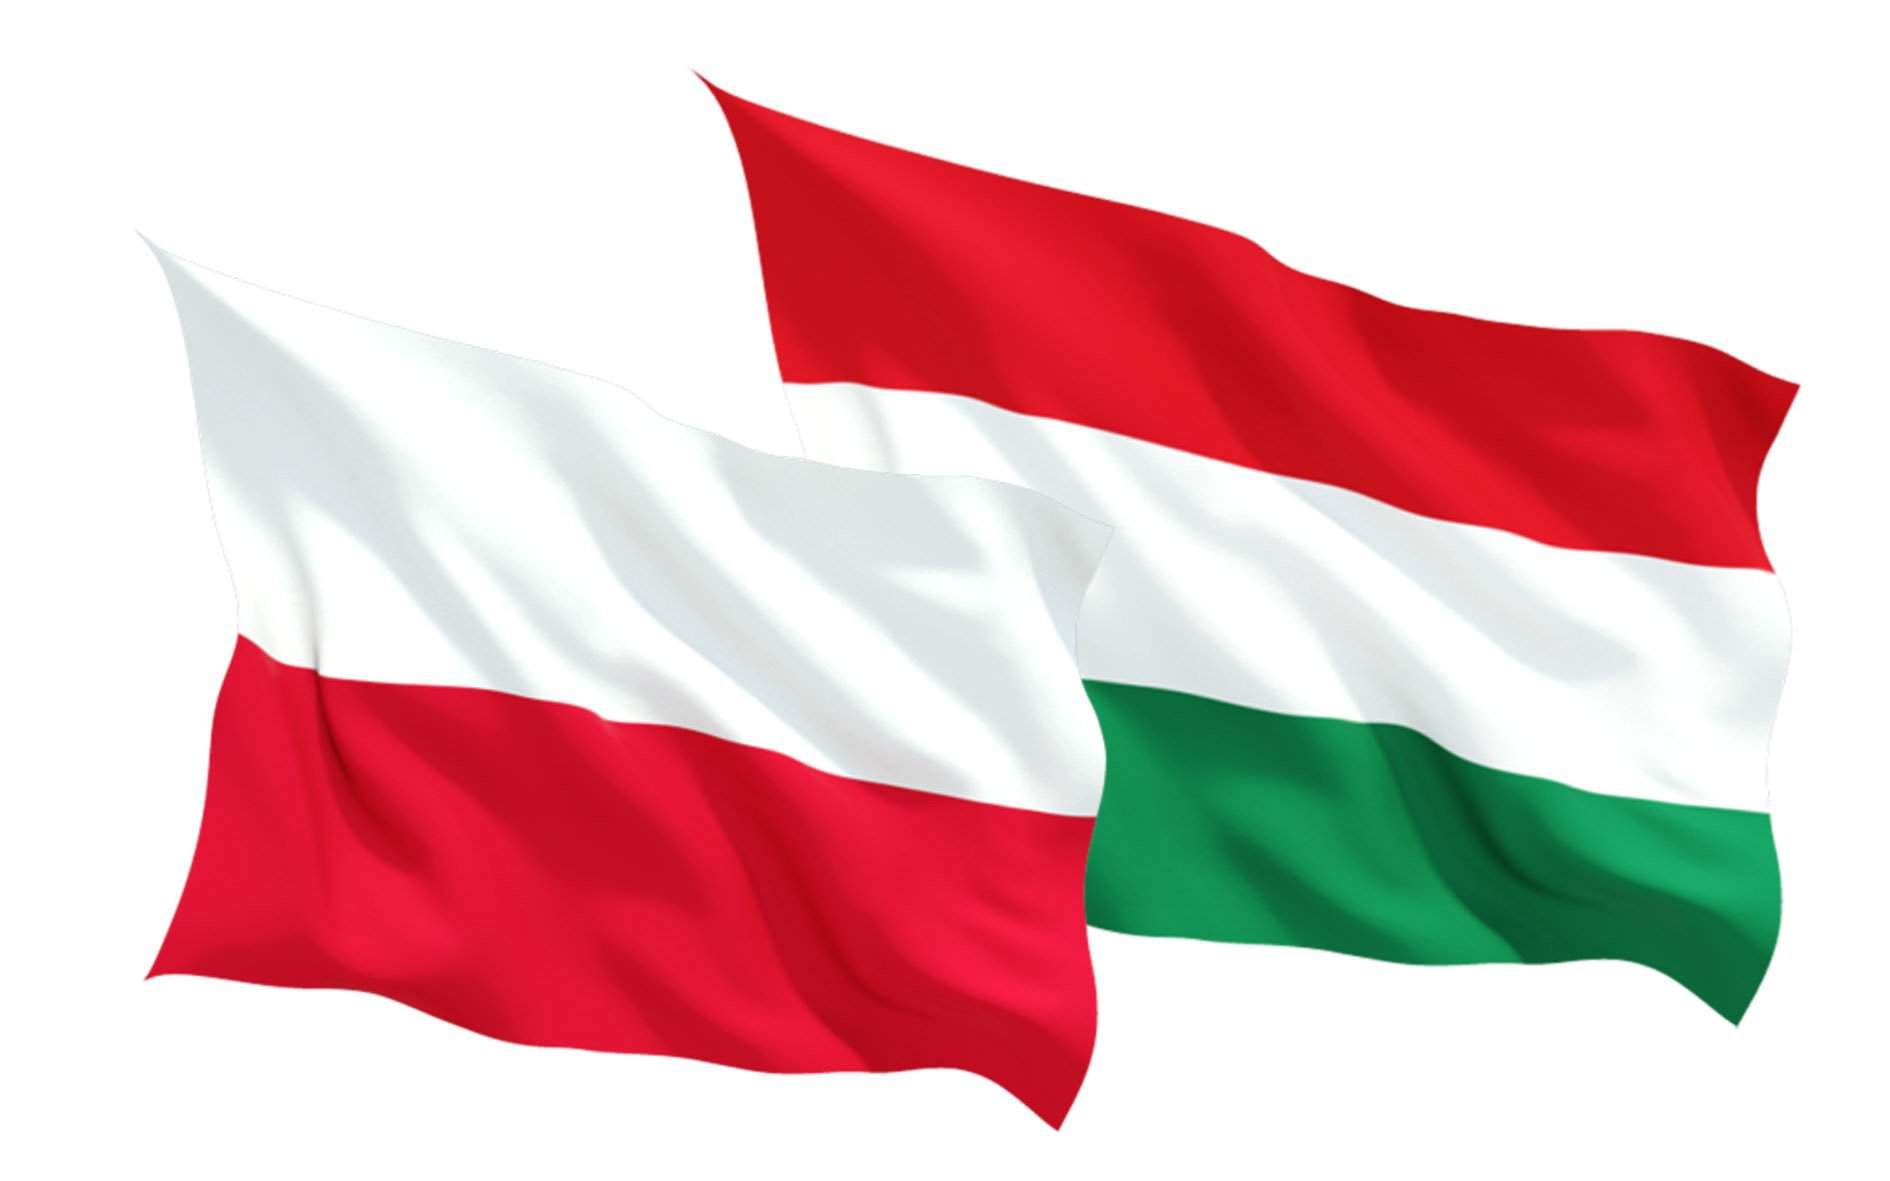 Christian Democrats call on parliament to show solidarity with Poland